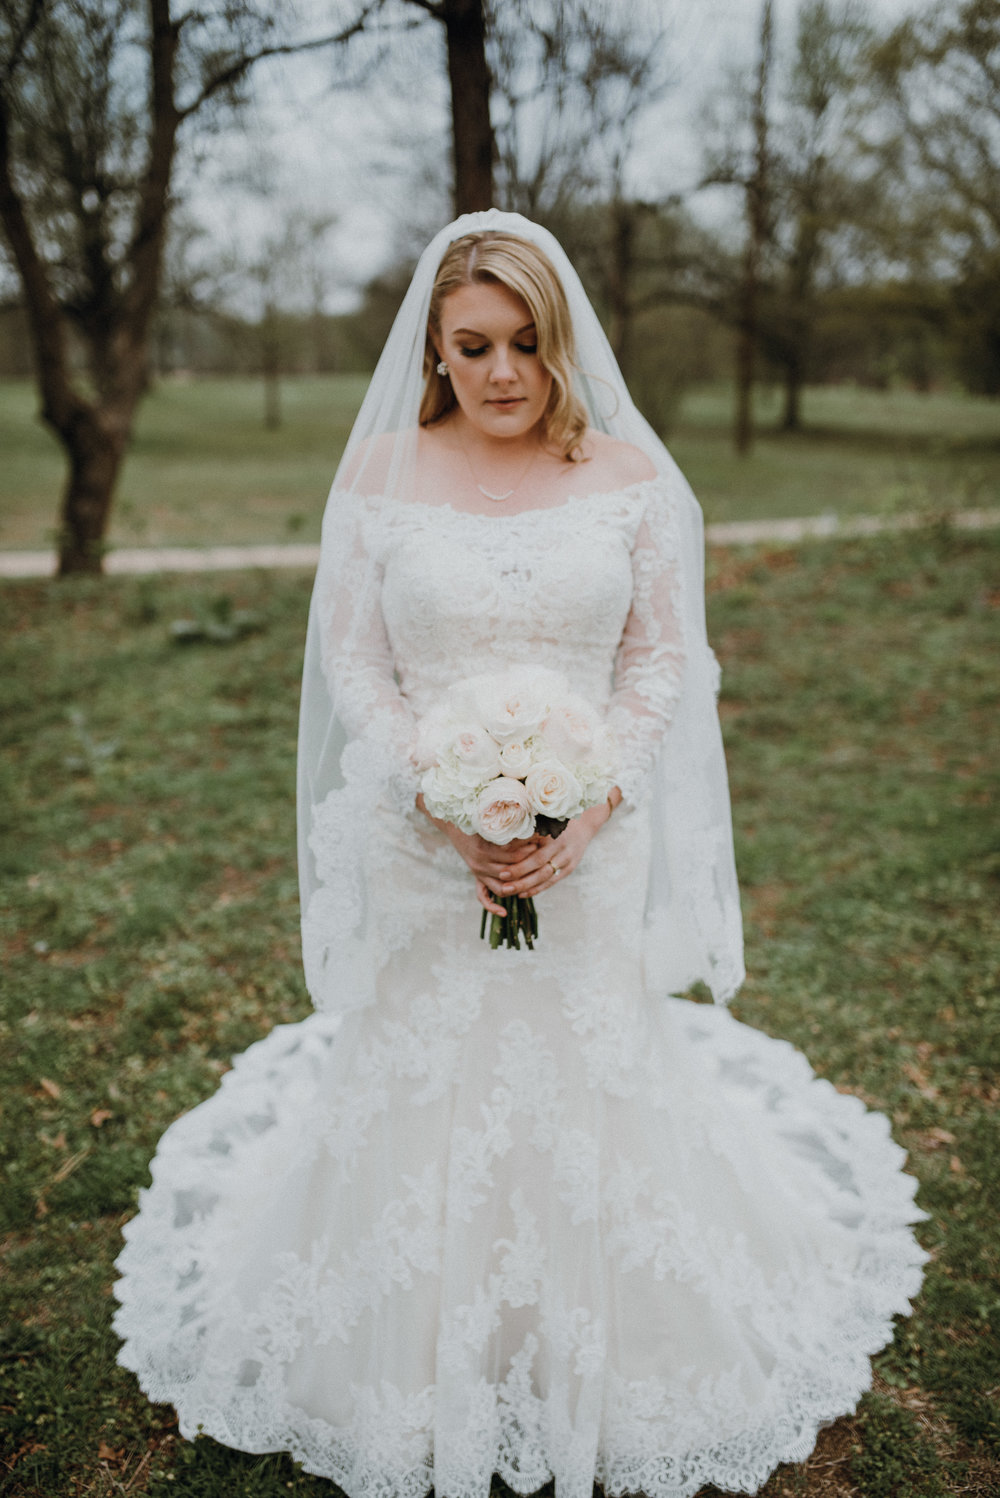 Dress by Morilee by Madeline Gardner, Bouquet by L Designs, Hairstyle by Shelby Barham.